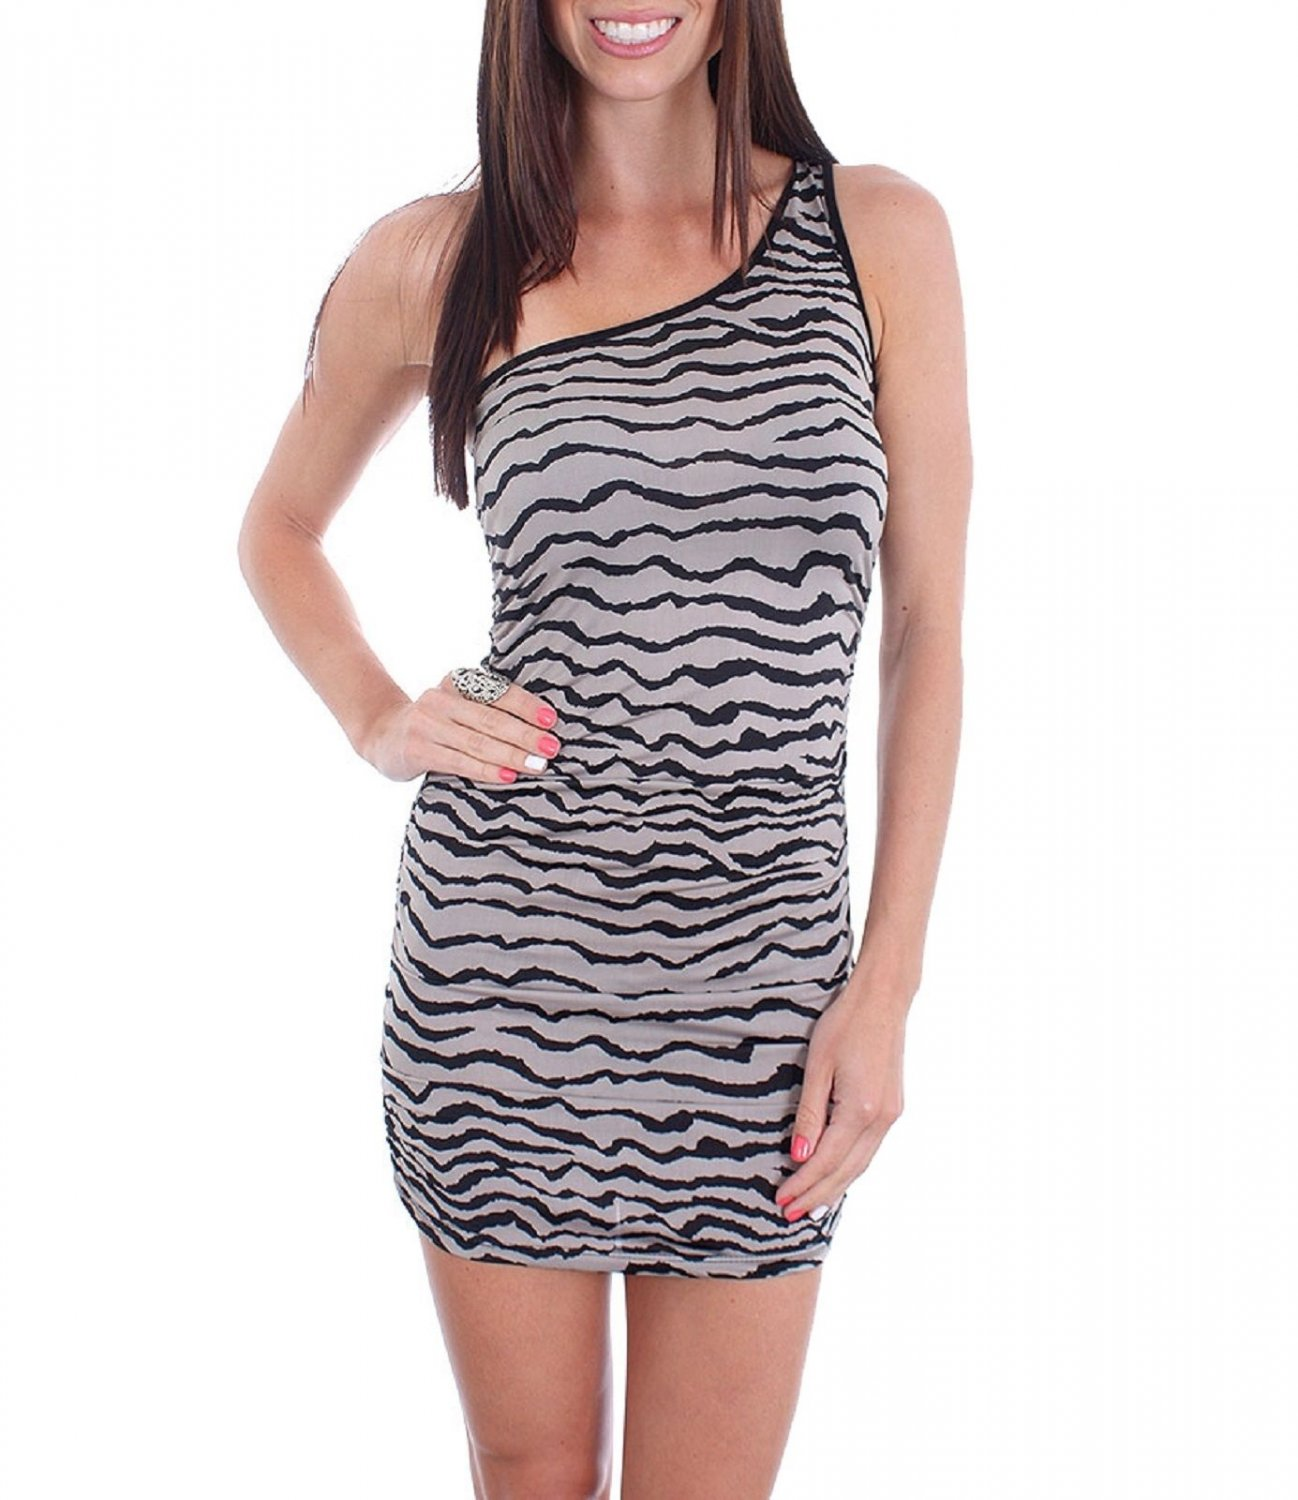 Cantata Mini Dress L Juniors Gray Zebra Tiger Stripe One Shoulder Ruched Large New